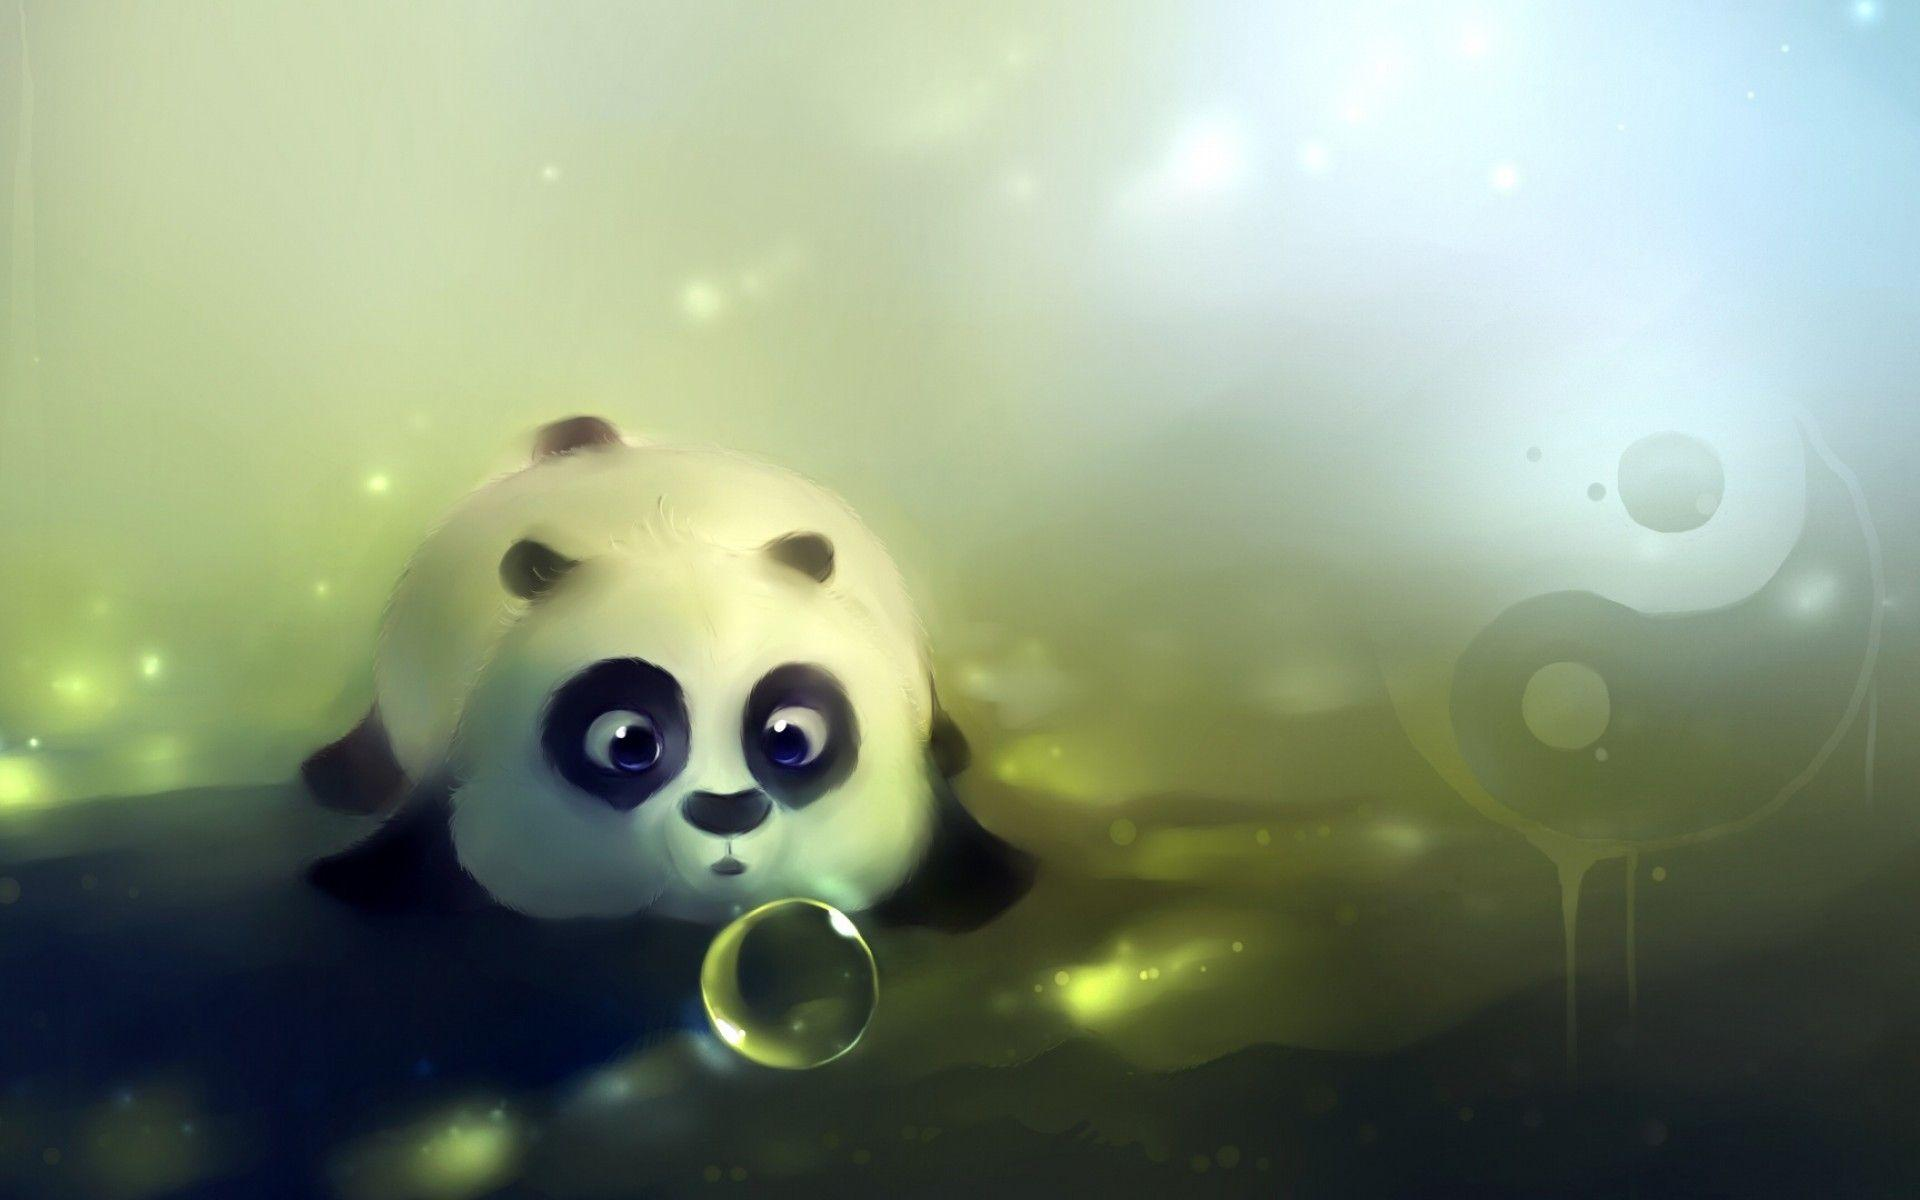 Hd Cute Wallpapers Wallpaper Cave